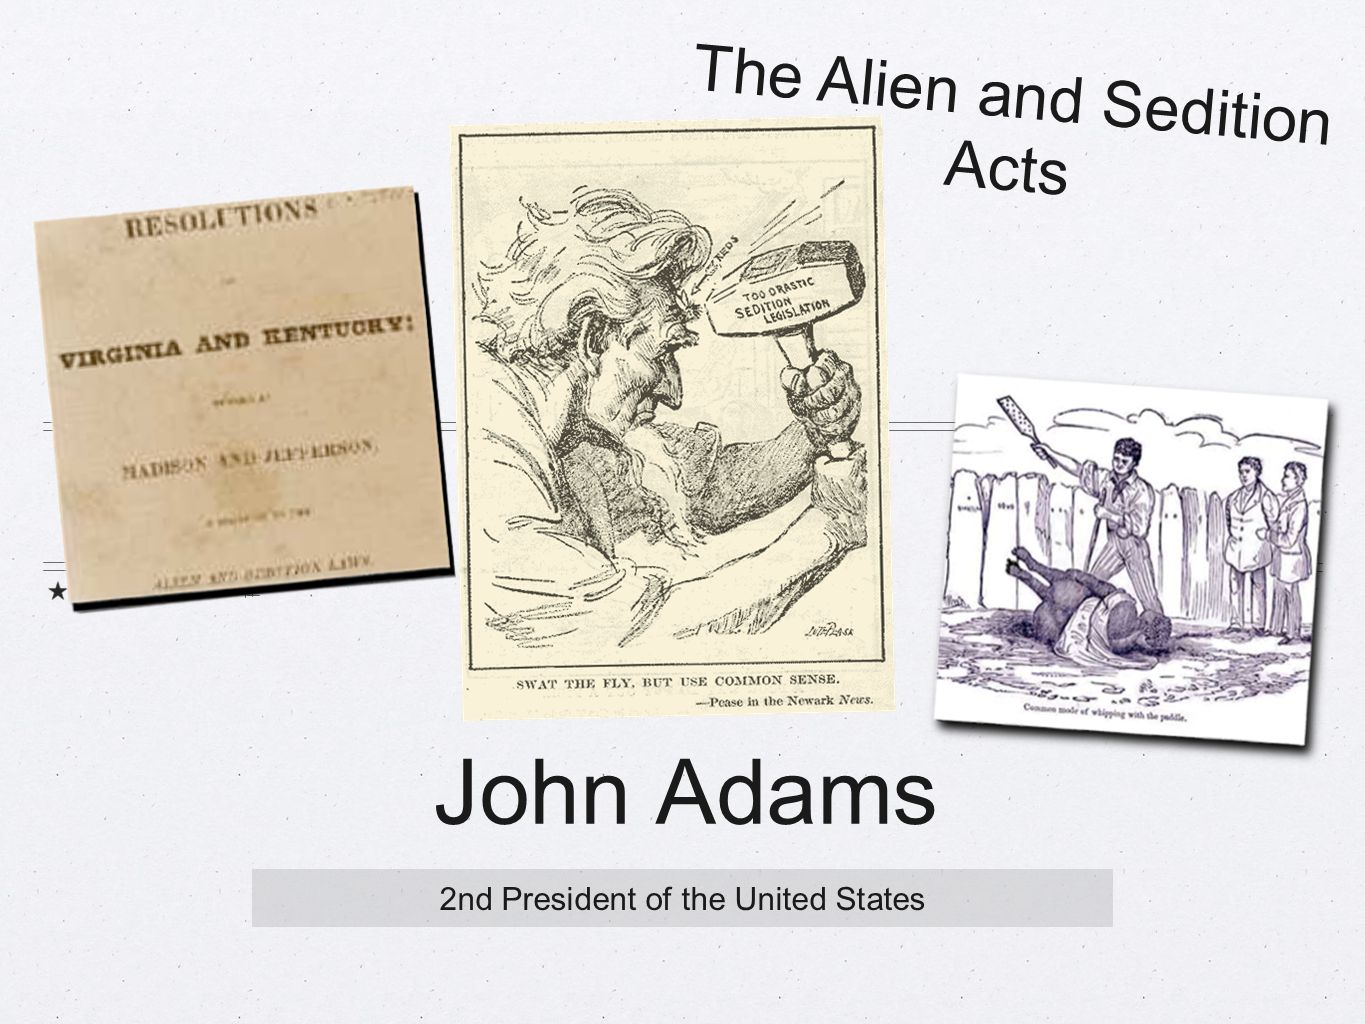 John Adams 2nd President of the United States The Alien and Sedition Acts